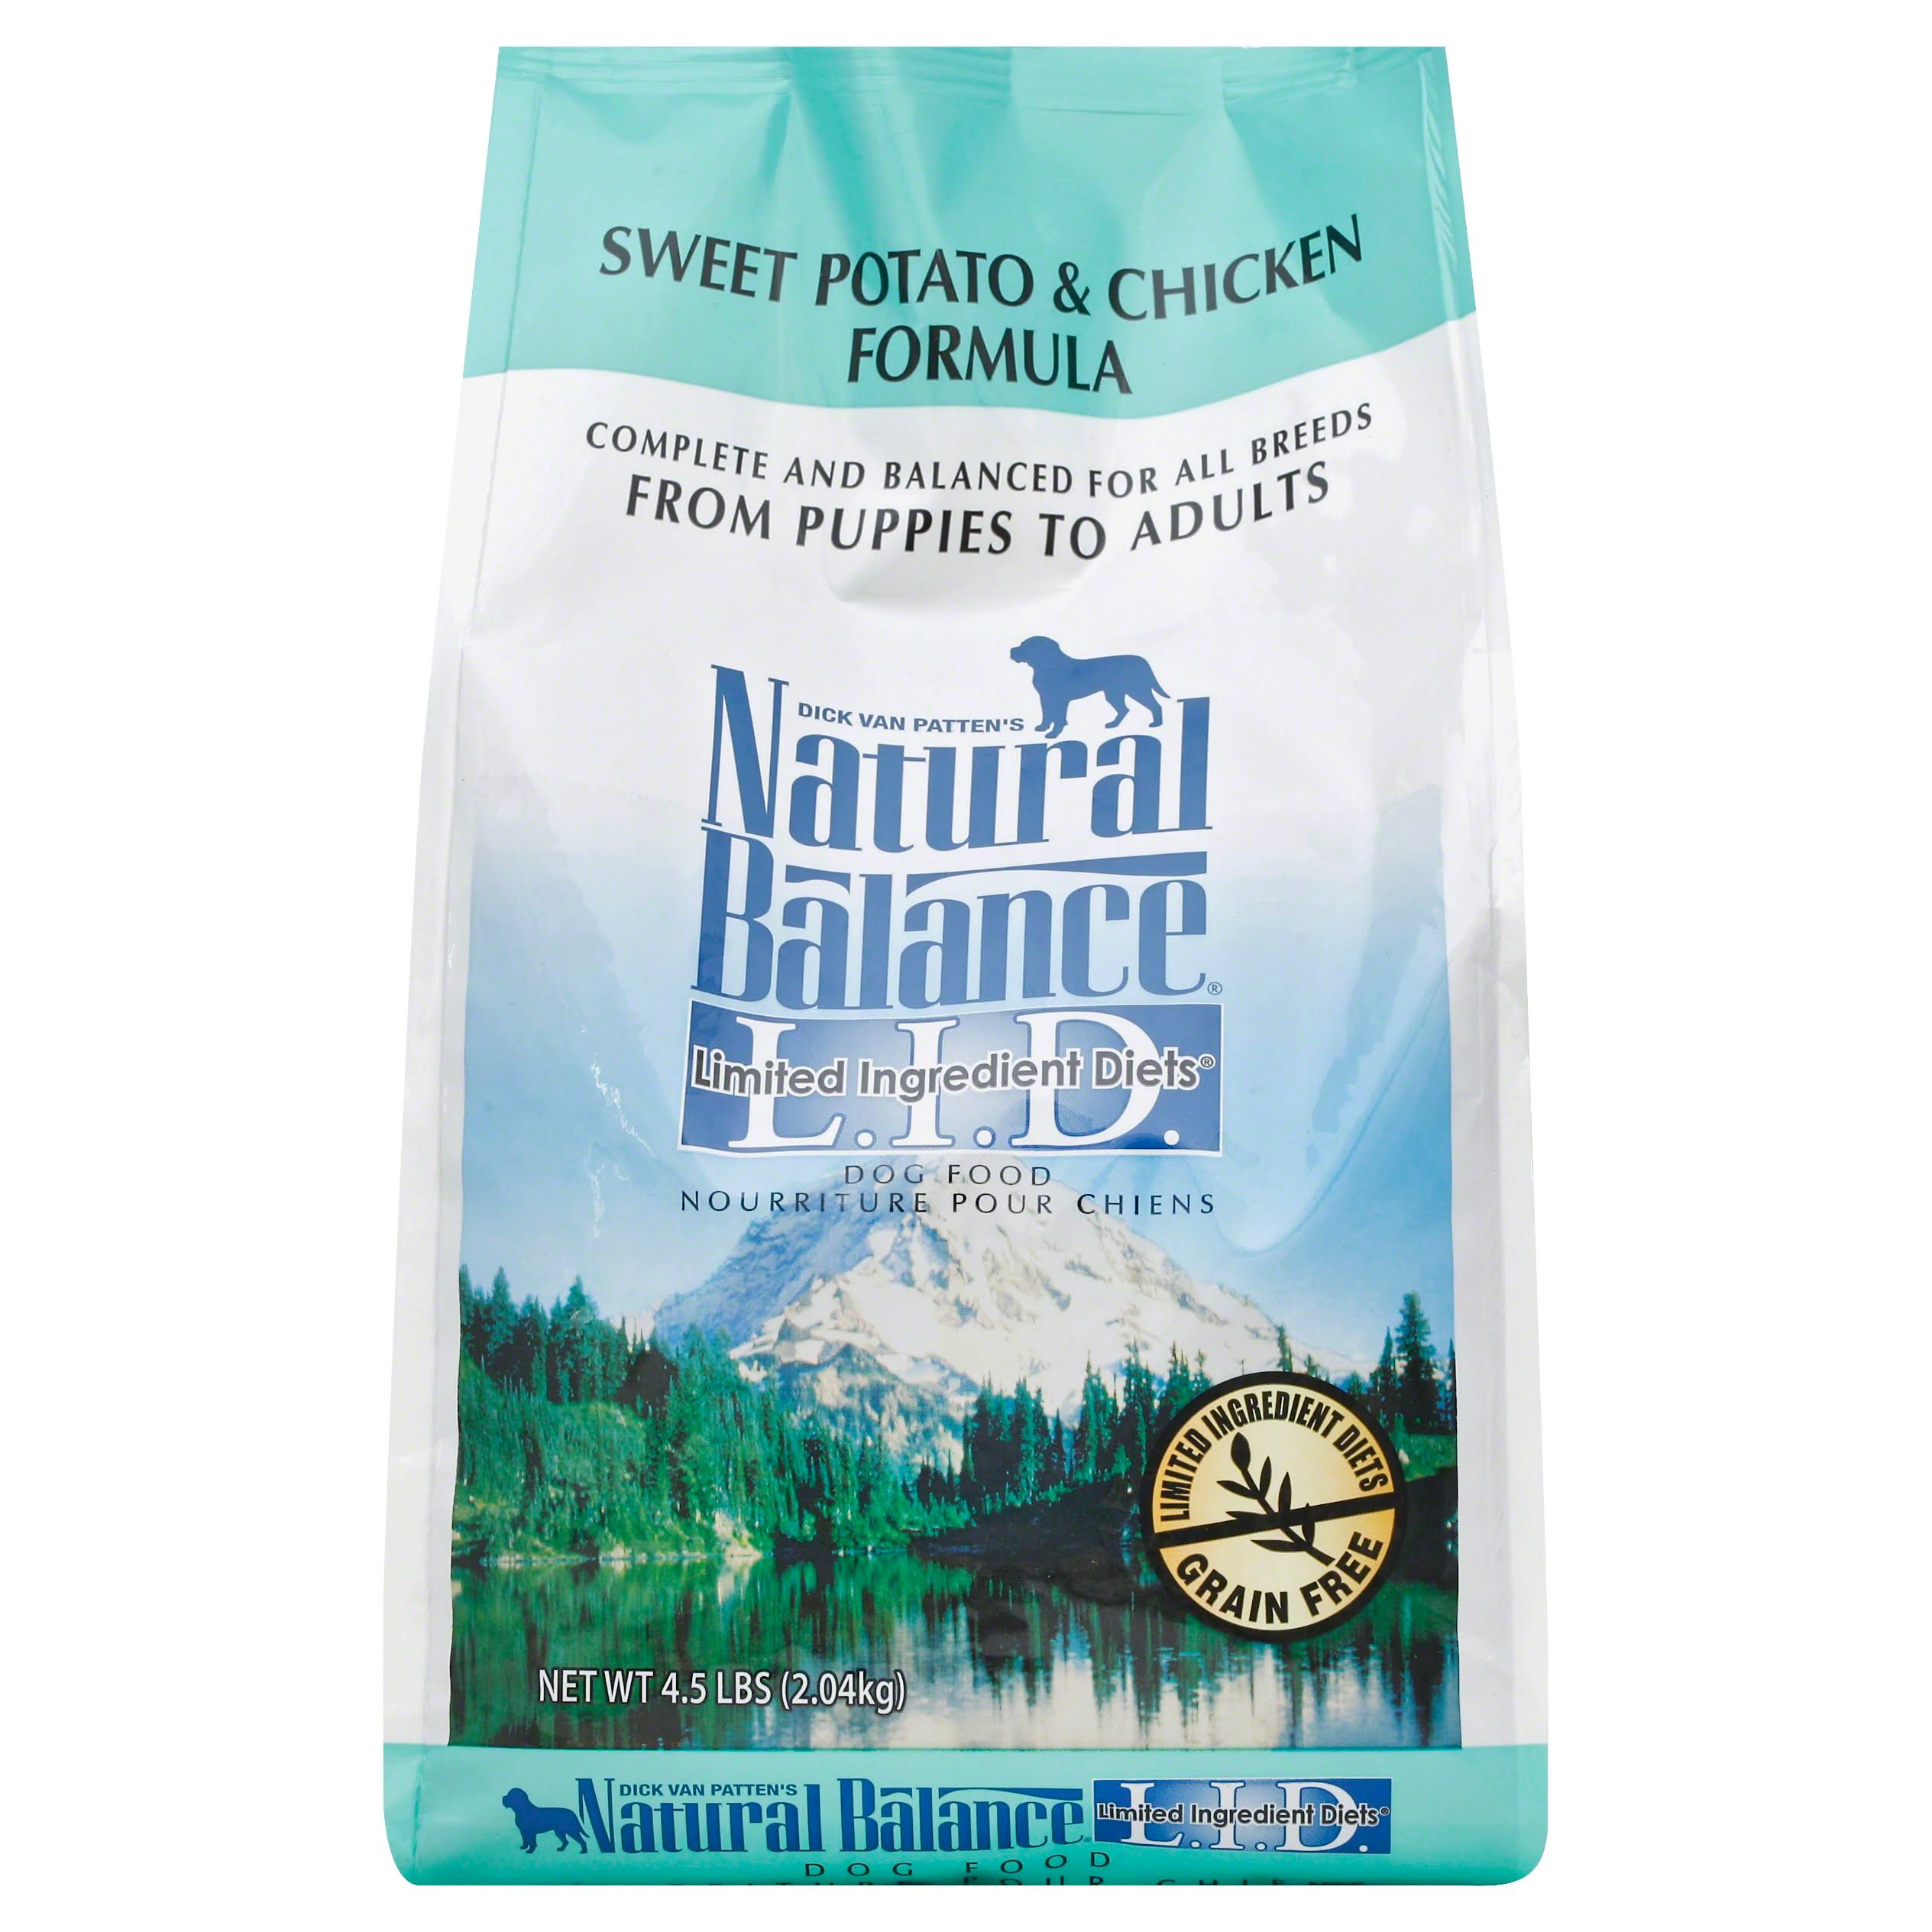 Natural Balance Limited Ingredient Diets Dog Food, Sweet Potato & Chicken Formula - 4.5 lb